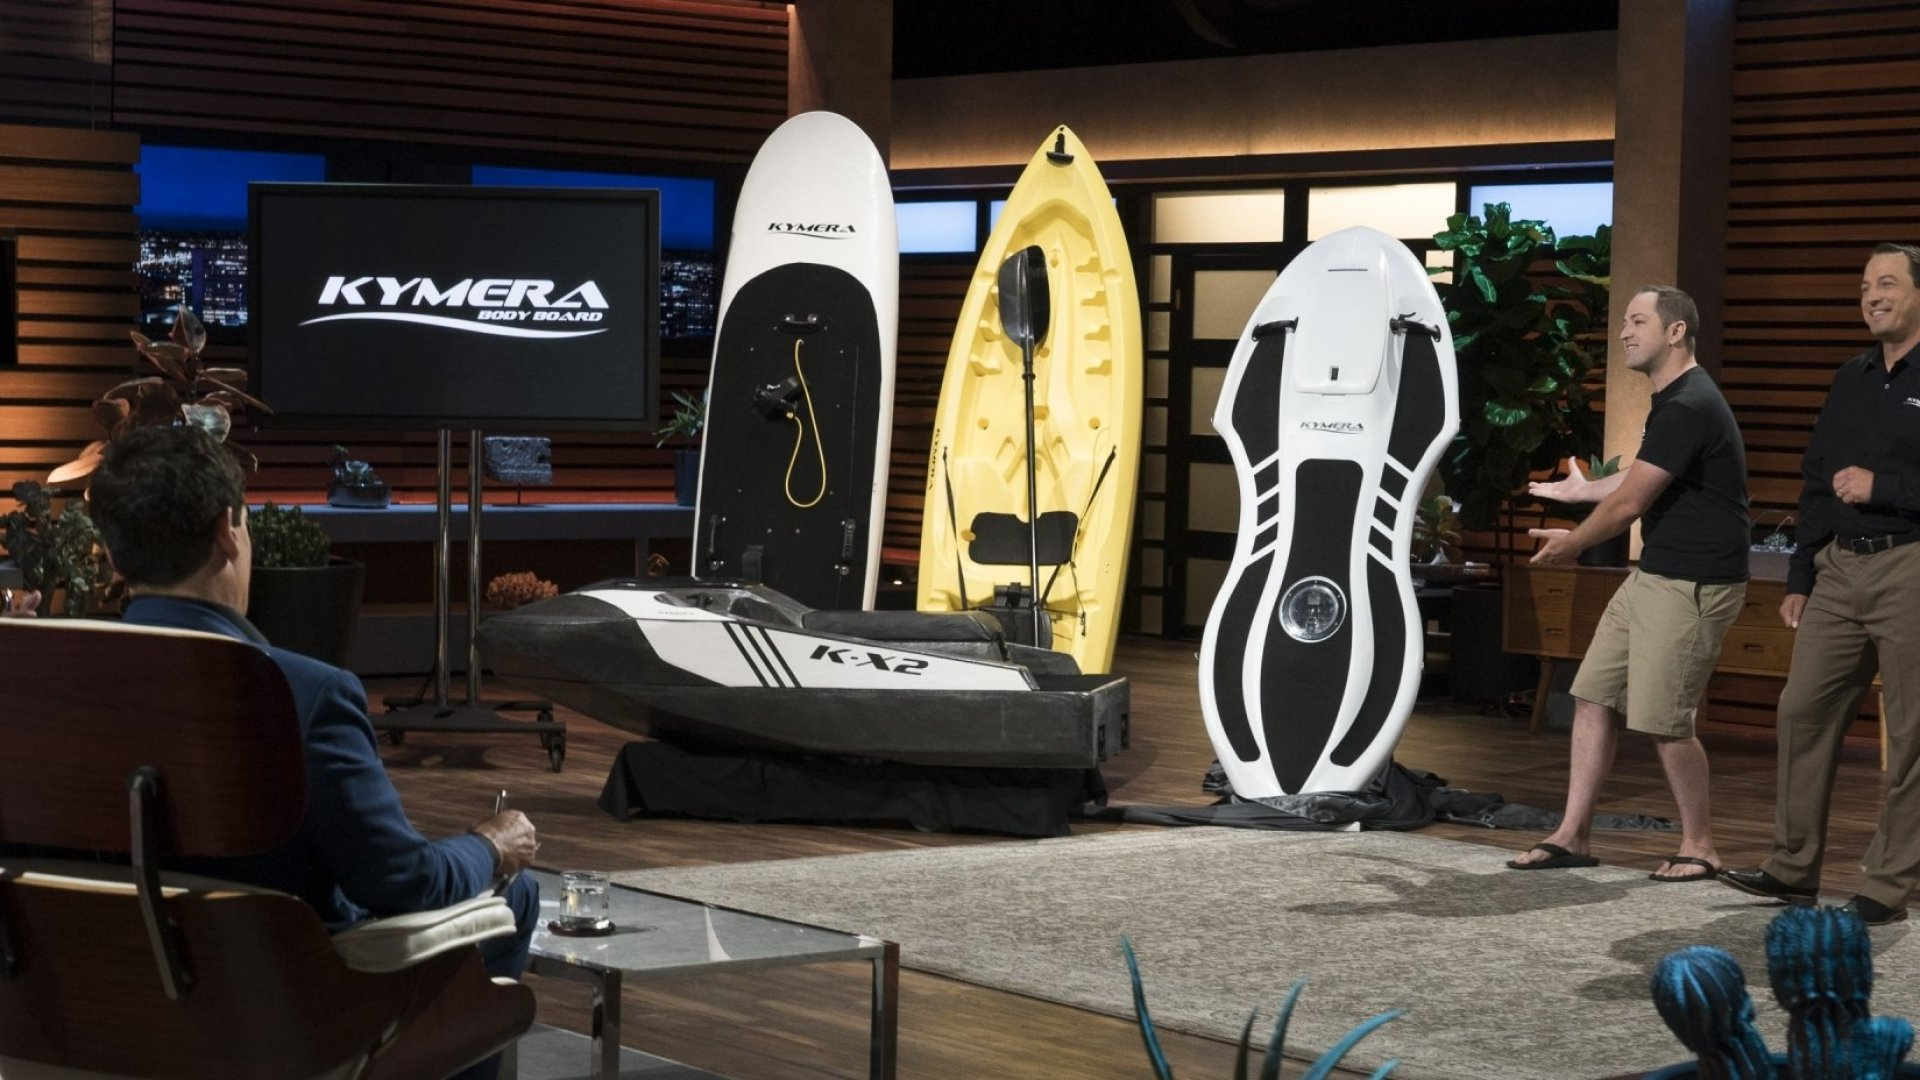 This 'Shark Tank' Founder Got a Second Chance and $500,000 From Robert Herjavec. Here's How He Did It